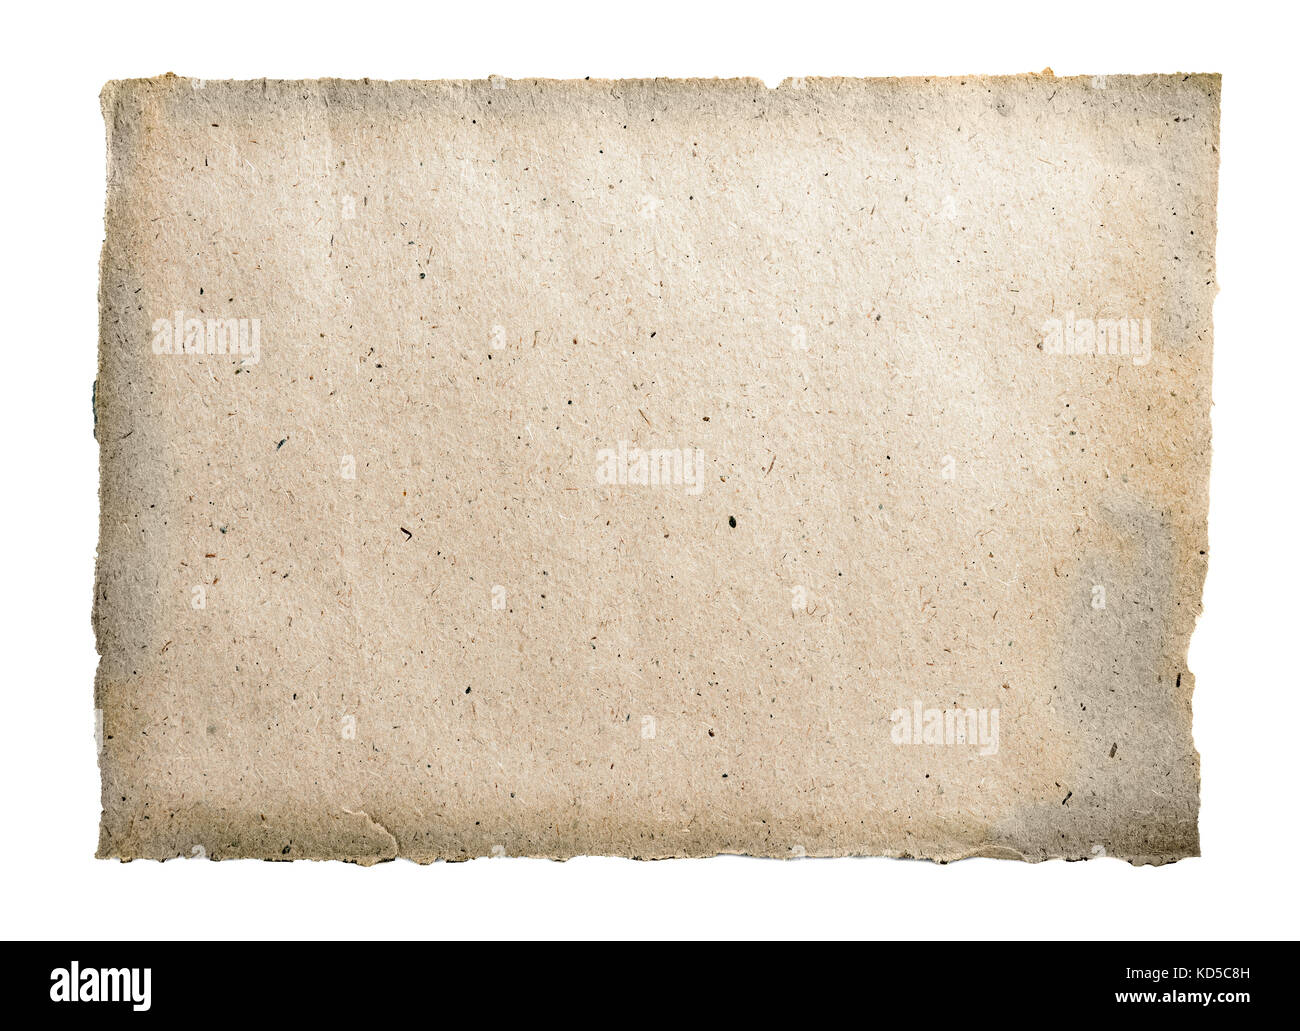 coarse recycled paper texture or background - Stock Image